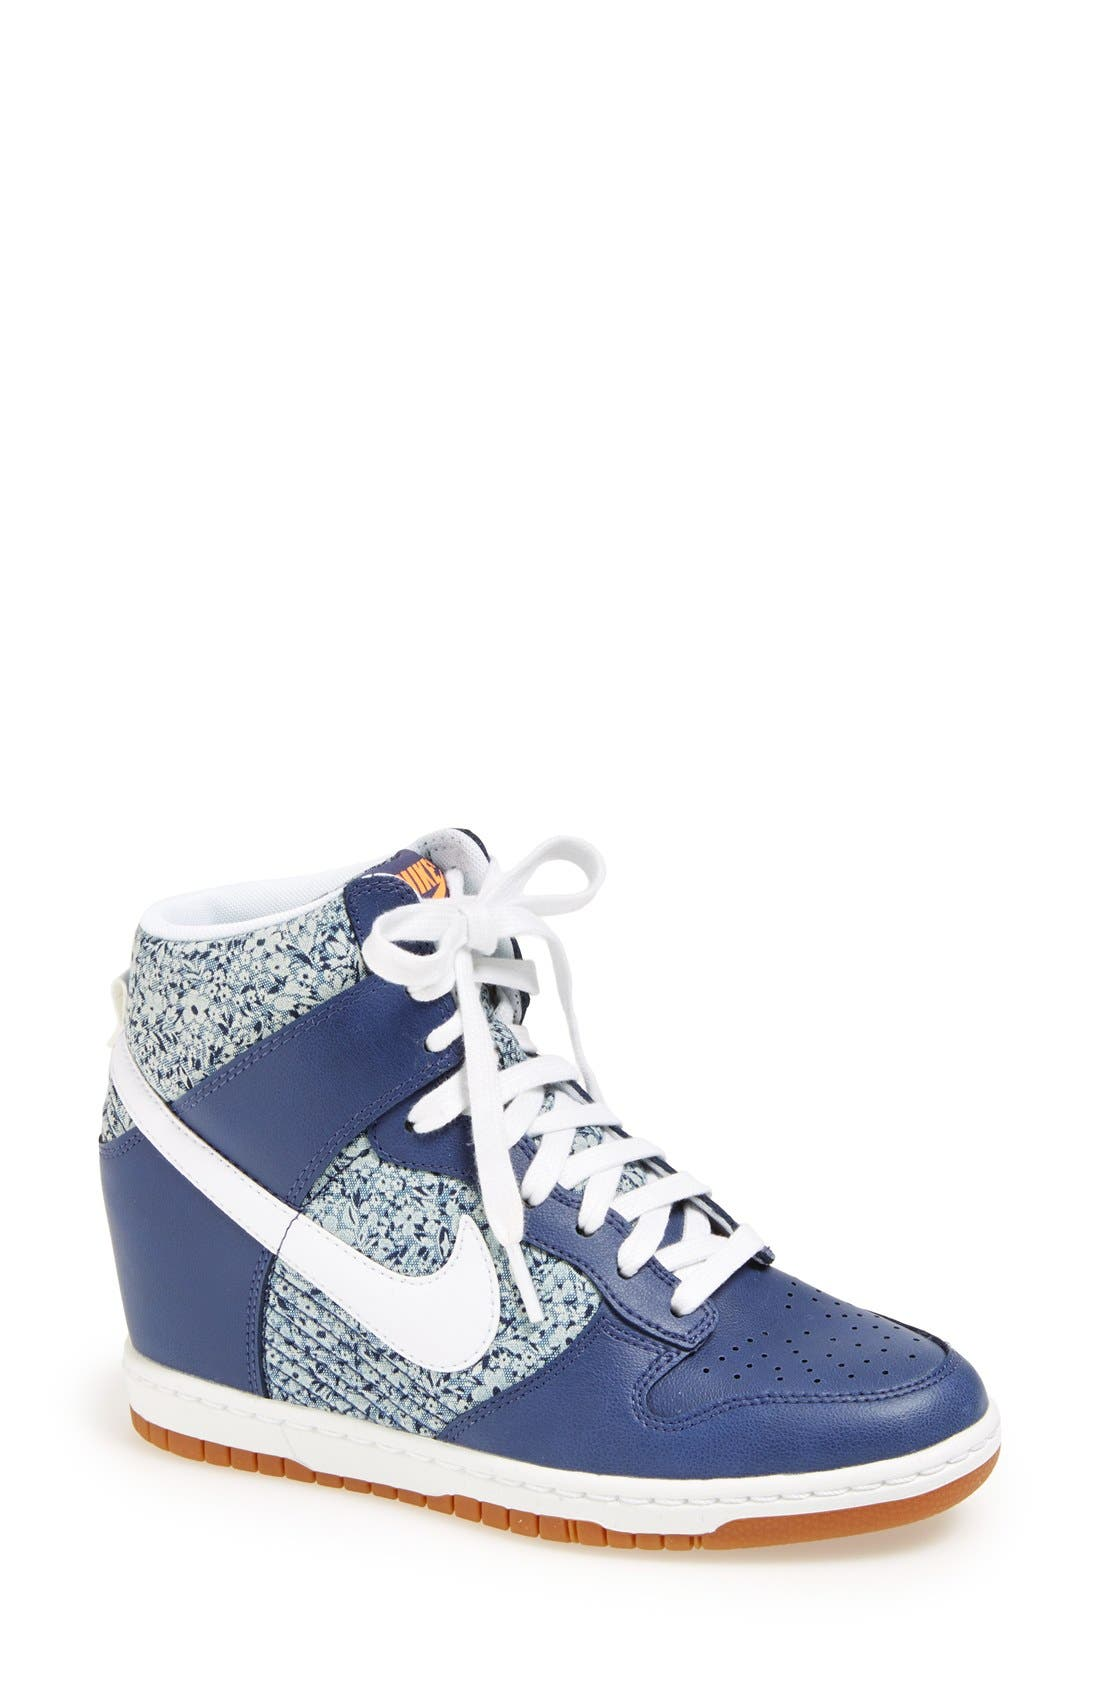 Alternate Image 1 Selected - Nike 'Dunk Sky Hi Liberty' Hidden Wedge Sneaker (Women)